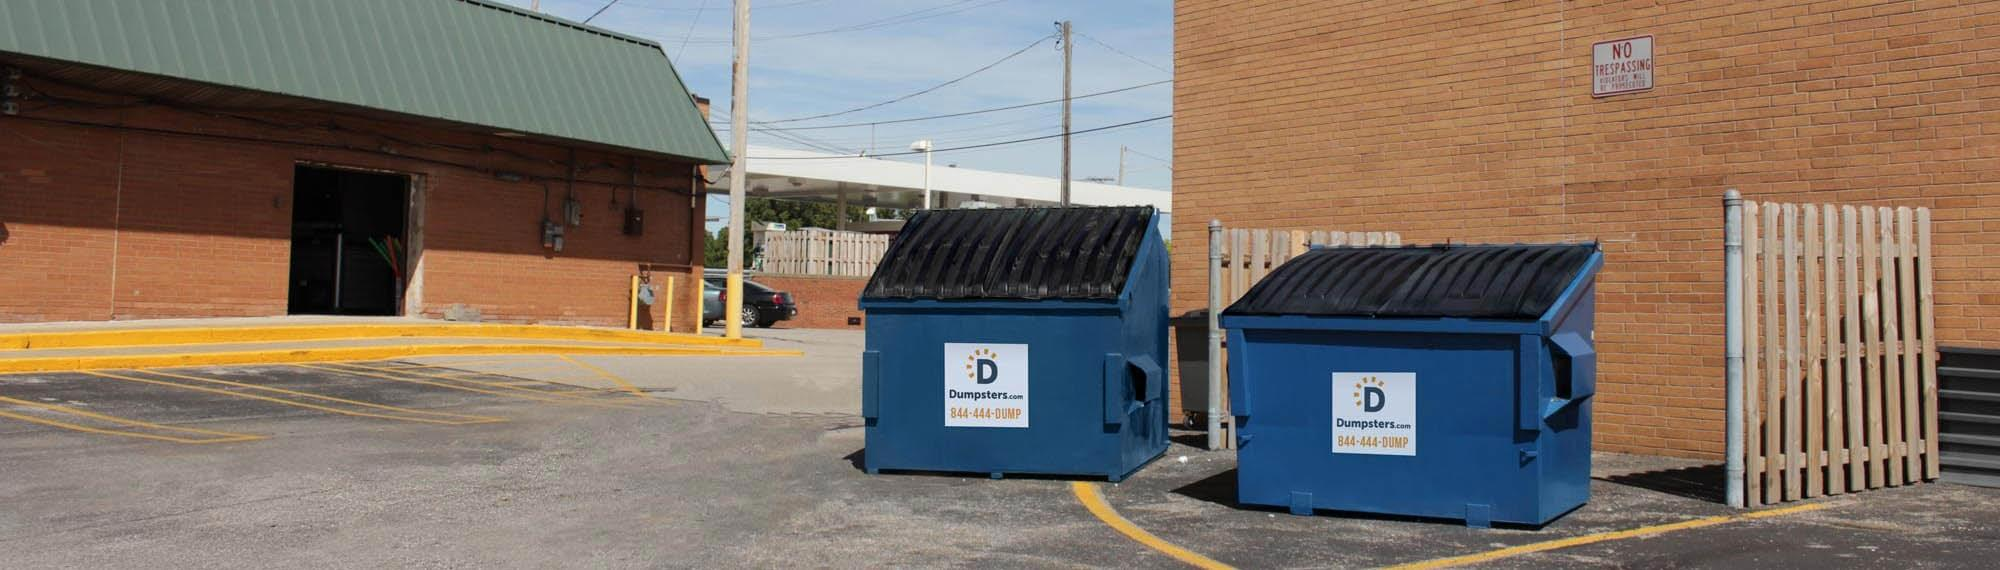 Front Load Dumpster in Commercial Parking Lot Used for Trash Pickup.